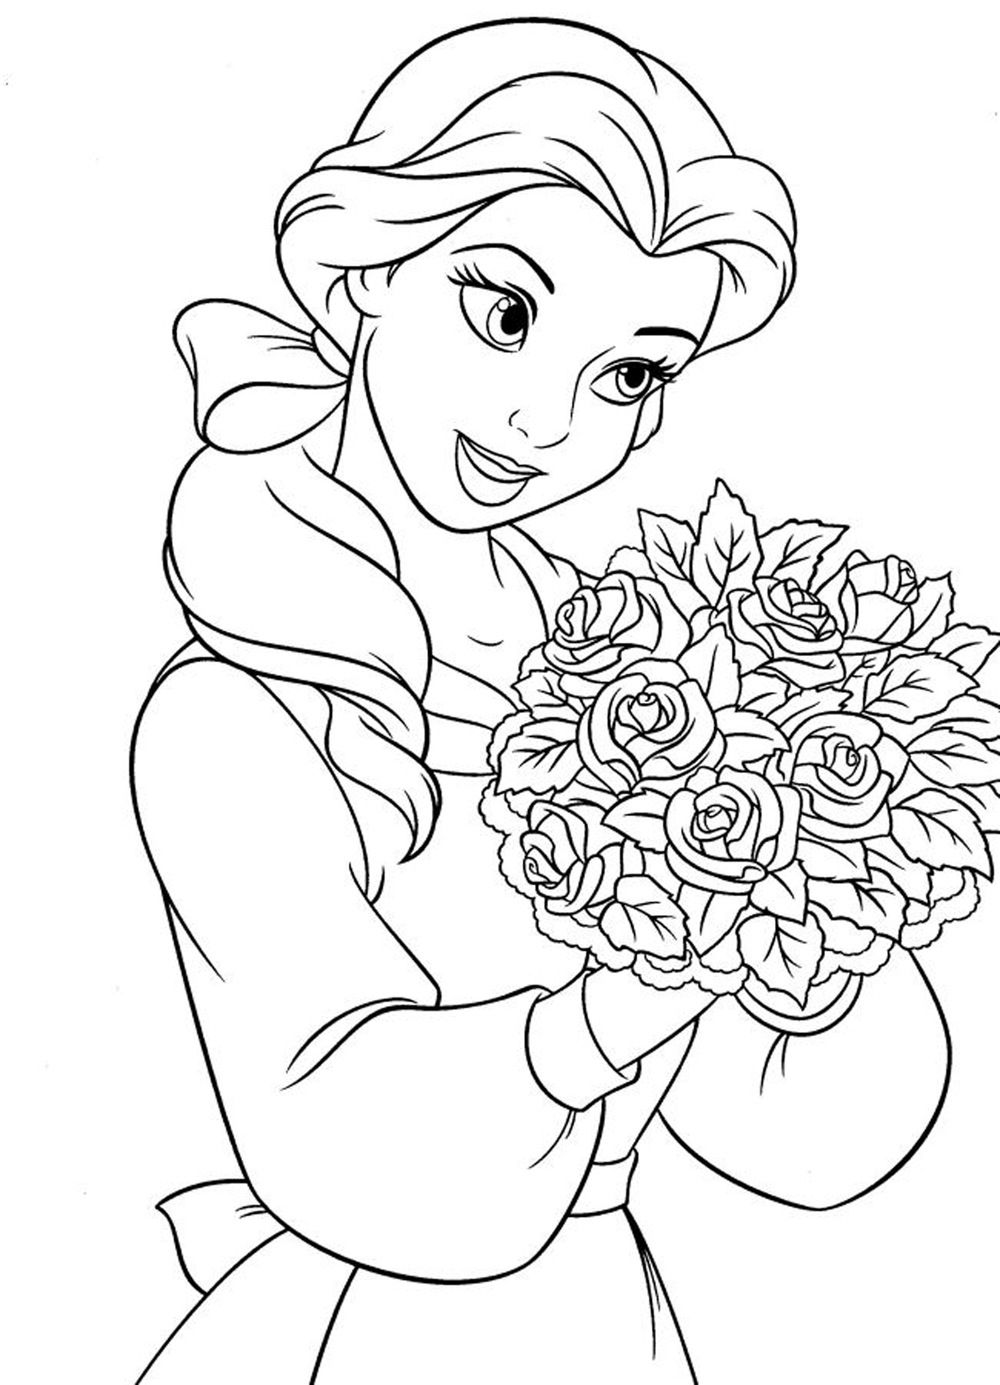 Coloring book for girl - Princess Coloring Pages For Girls Free Large Images